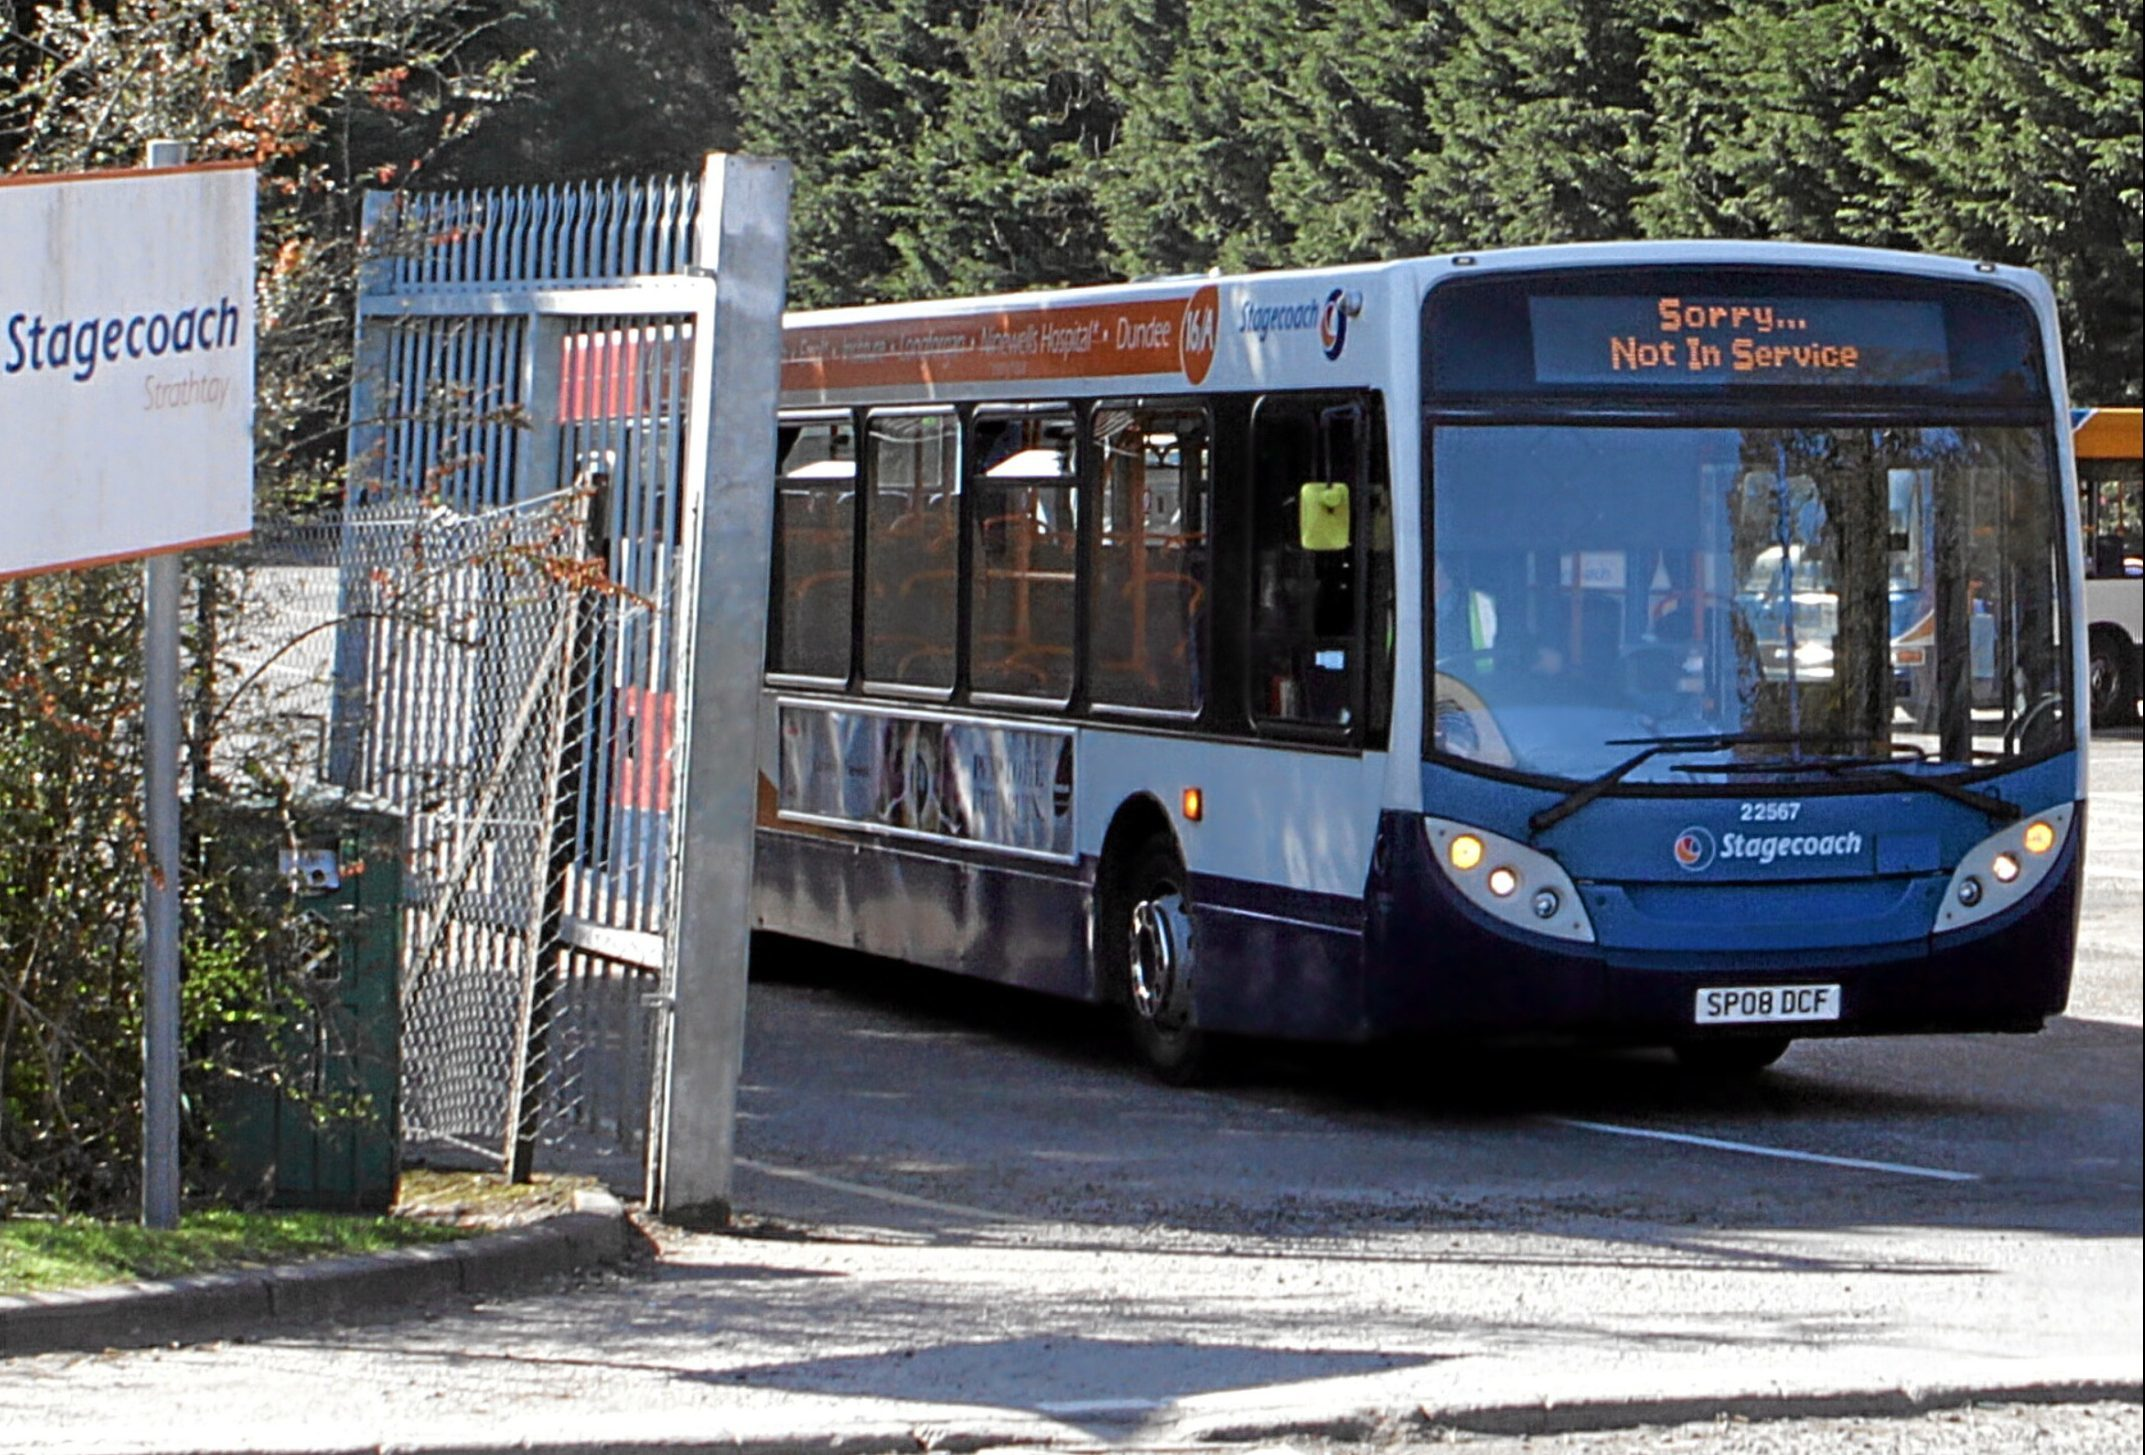 The Stagecoach depot on Smeaton Road is to close.